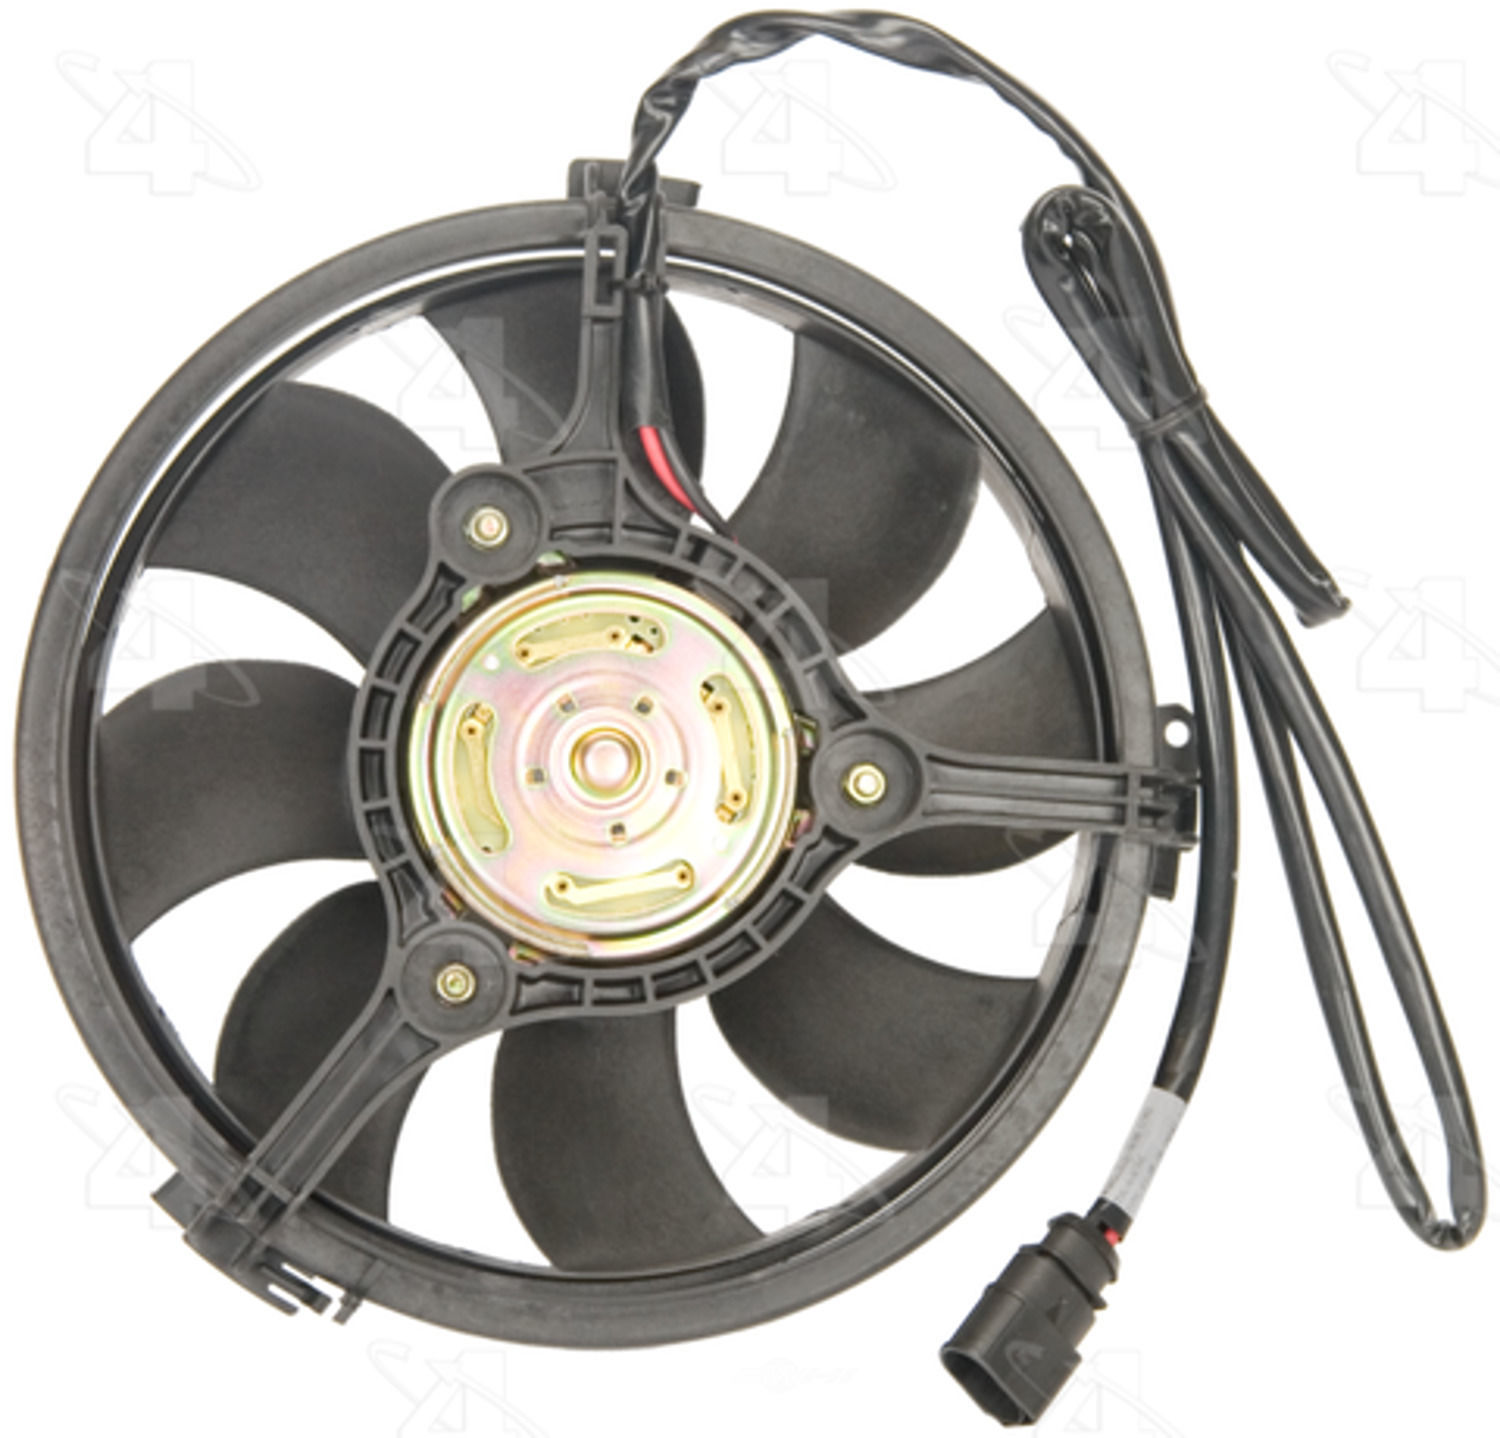 FOUR SEASONS - Condenser Fan Assembly - FSE 75603